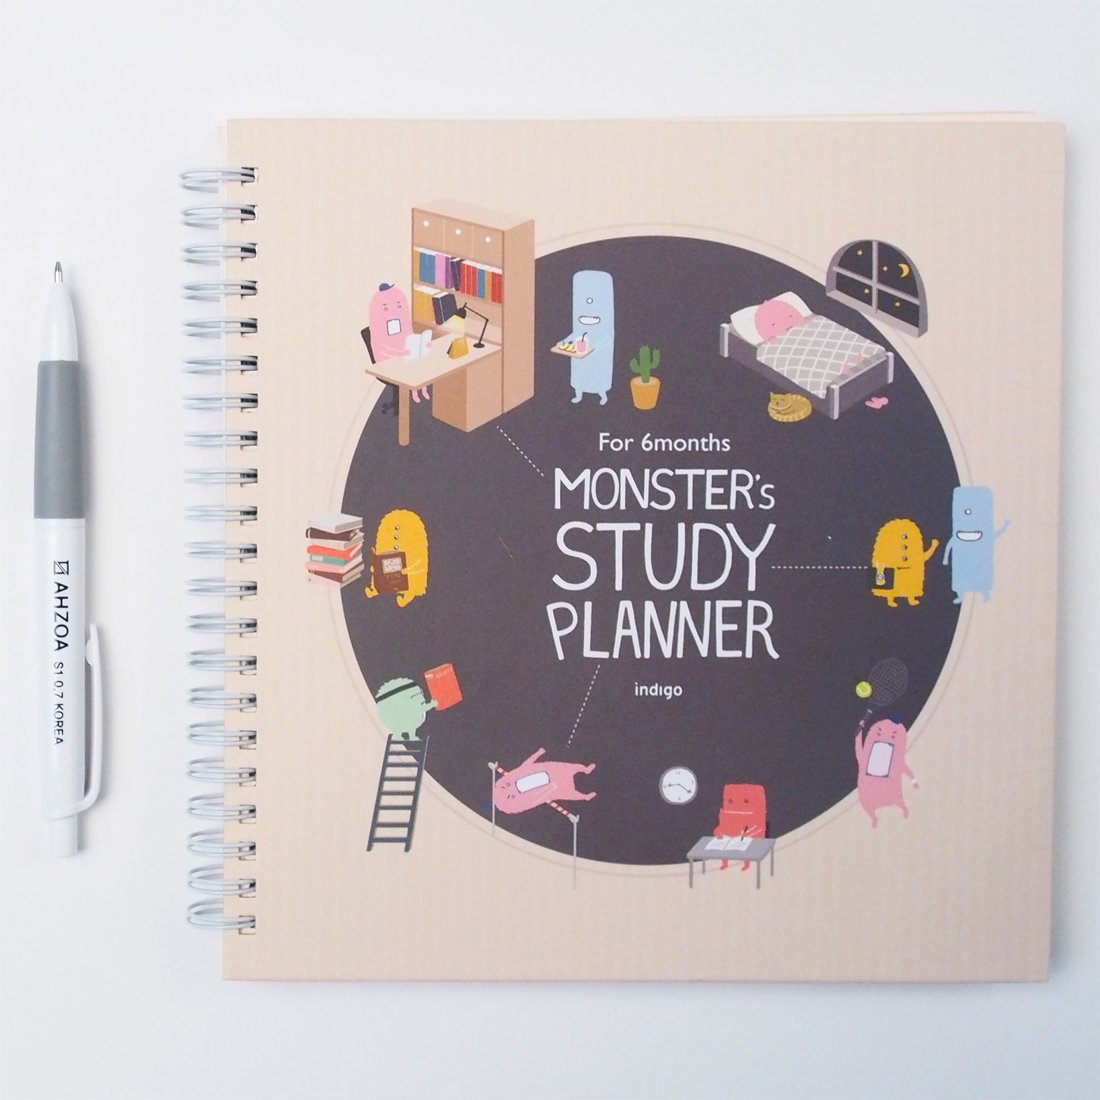 Monster's Study Planner for 6 Months including AHZOA Pencil and AHZOA 5 Colors post-it flags and English Translation Paper about Korean Subtitles (Beige)